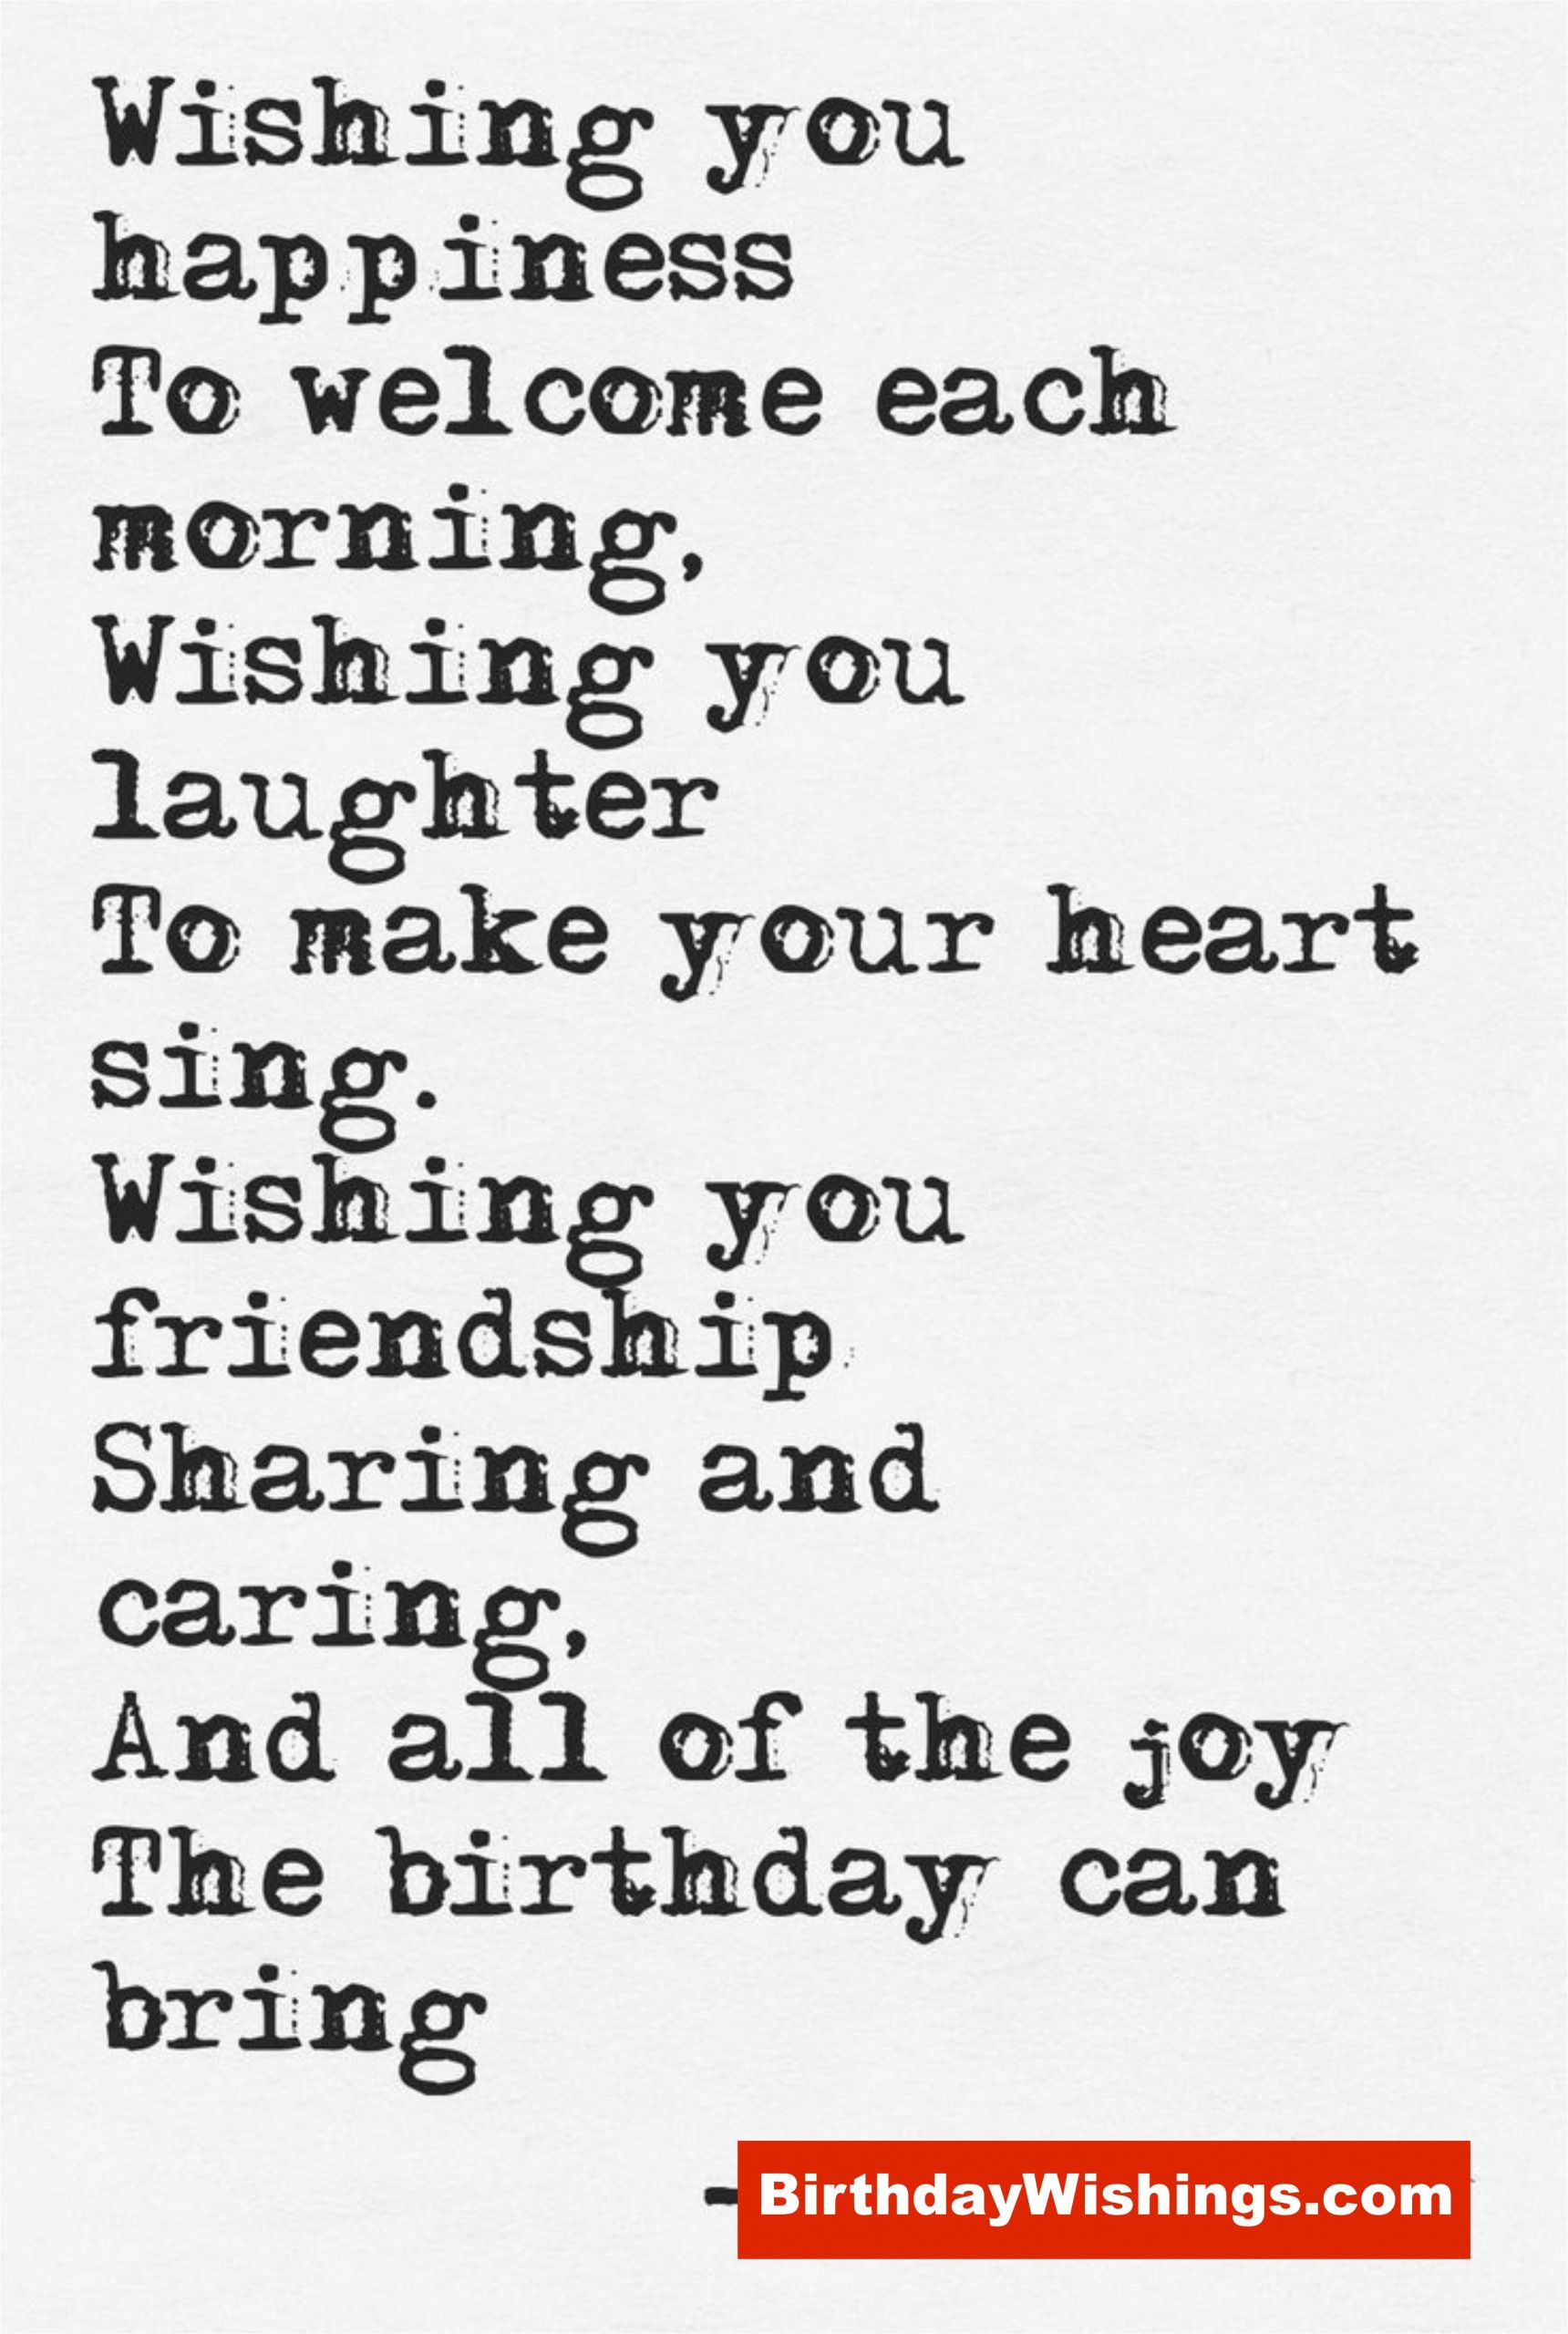 Birthday Card Quotes for Friend Birthday Wishes for Best Friend with Images Happy